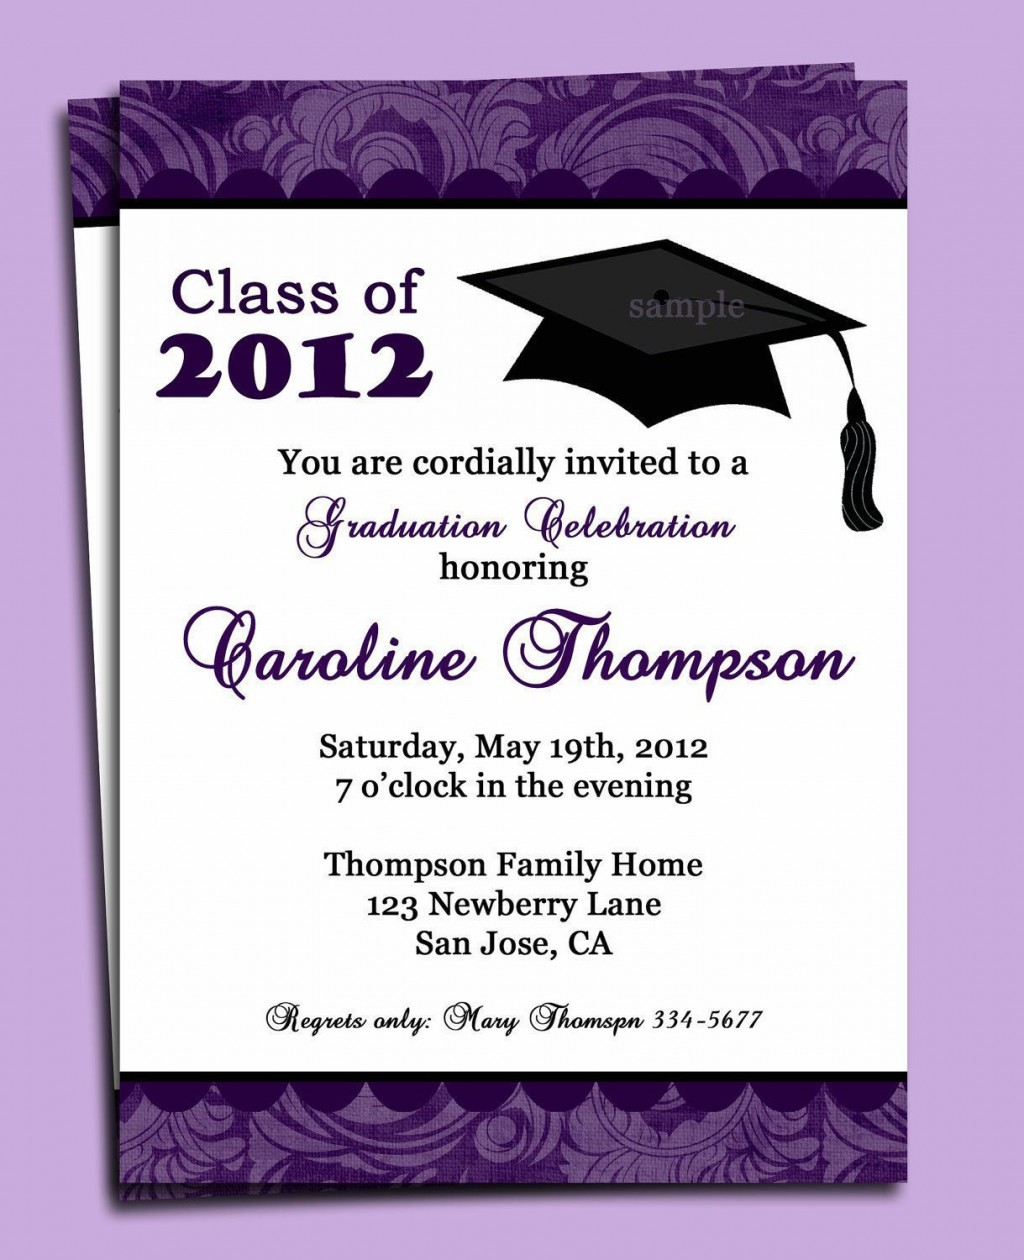 000 Top Free Graduation Announcement Template Photo  Invitation Microsoft Word Printable KindergartenLarge